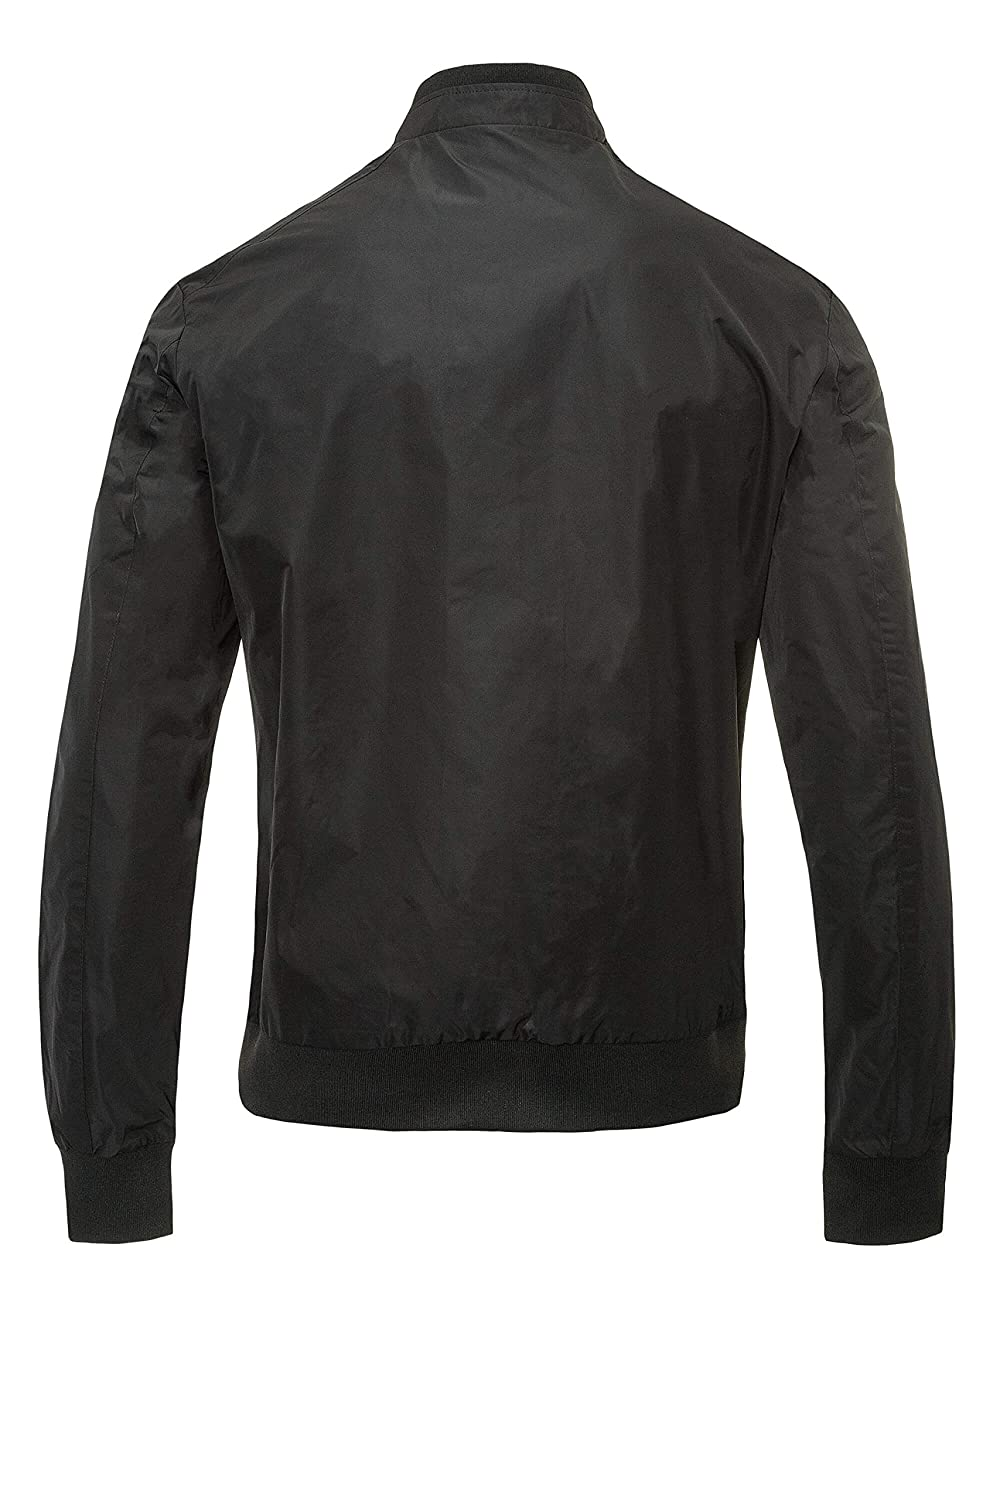 a07b67c846119 Antony Morato Black Collection Bomber Jacket  Amazon.co.uk  Clothing